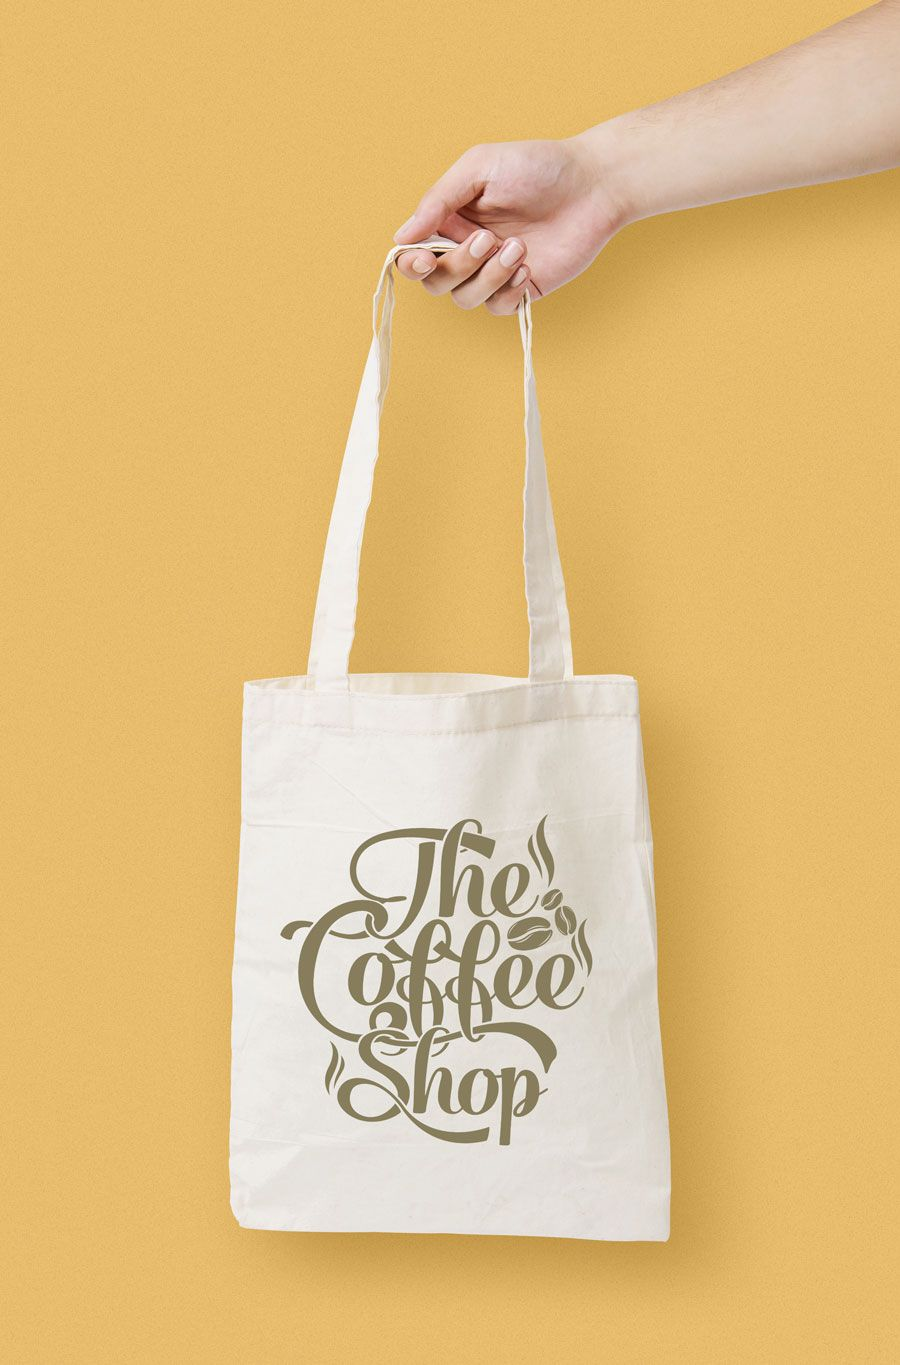 Free Canvas Tote Bag Mockup | Free CU/PU Mock Ups/ Digital ...